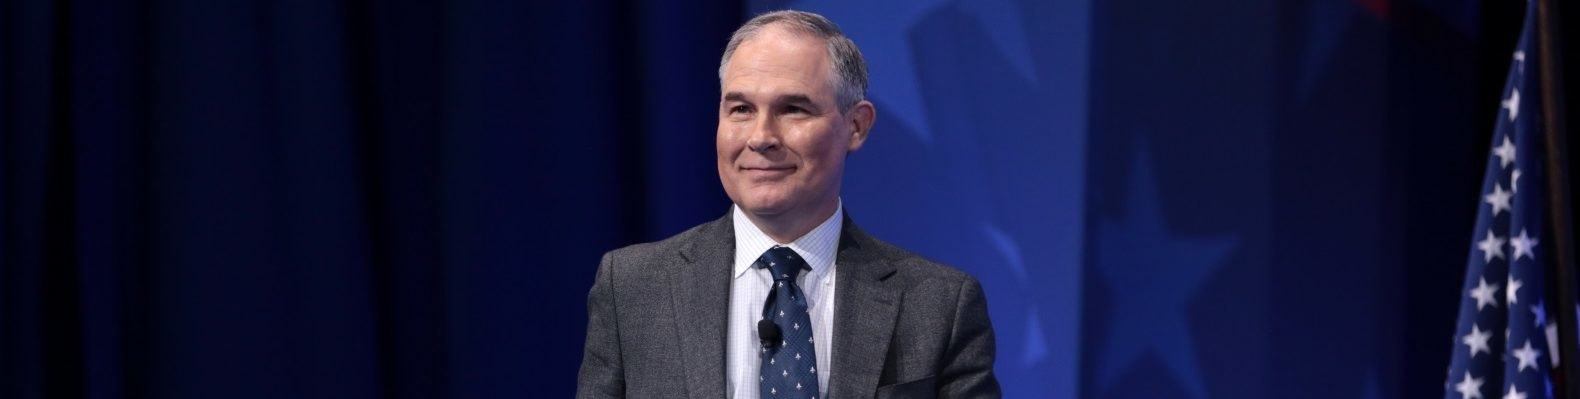 Environmental Protection Agency (EPA) administrator Scott Pruitt at the Conservative Political Action Conference